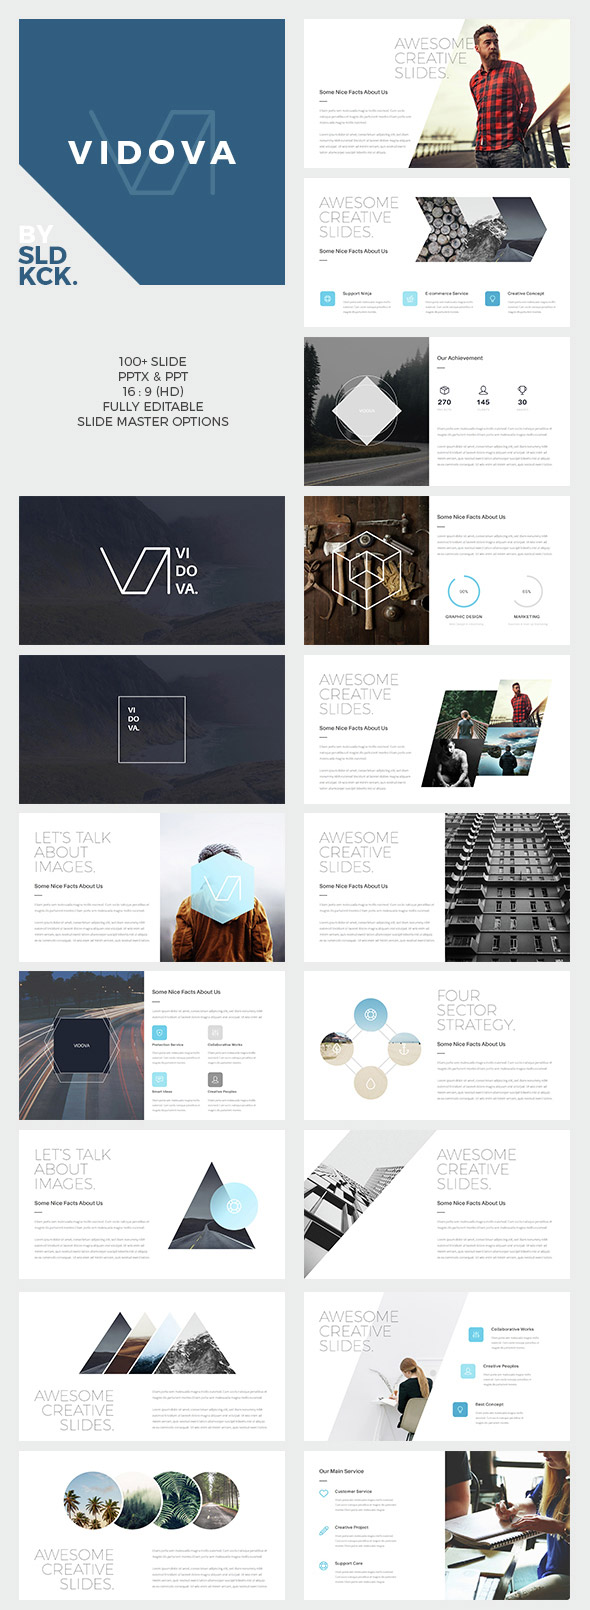 20 ppt templates for simple modern powerpoint presentations vidova modern ppt presentation template design toneelgroepblik Gallery